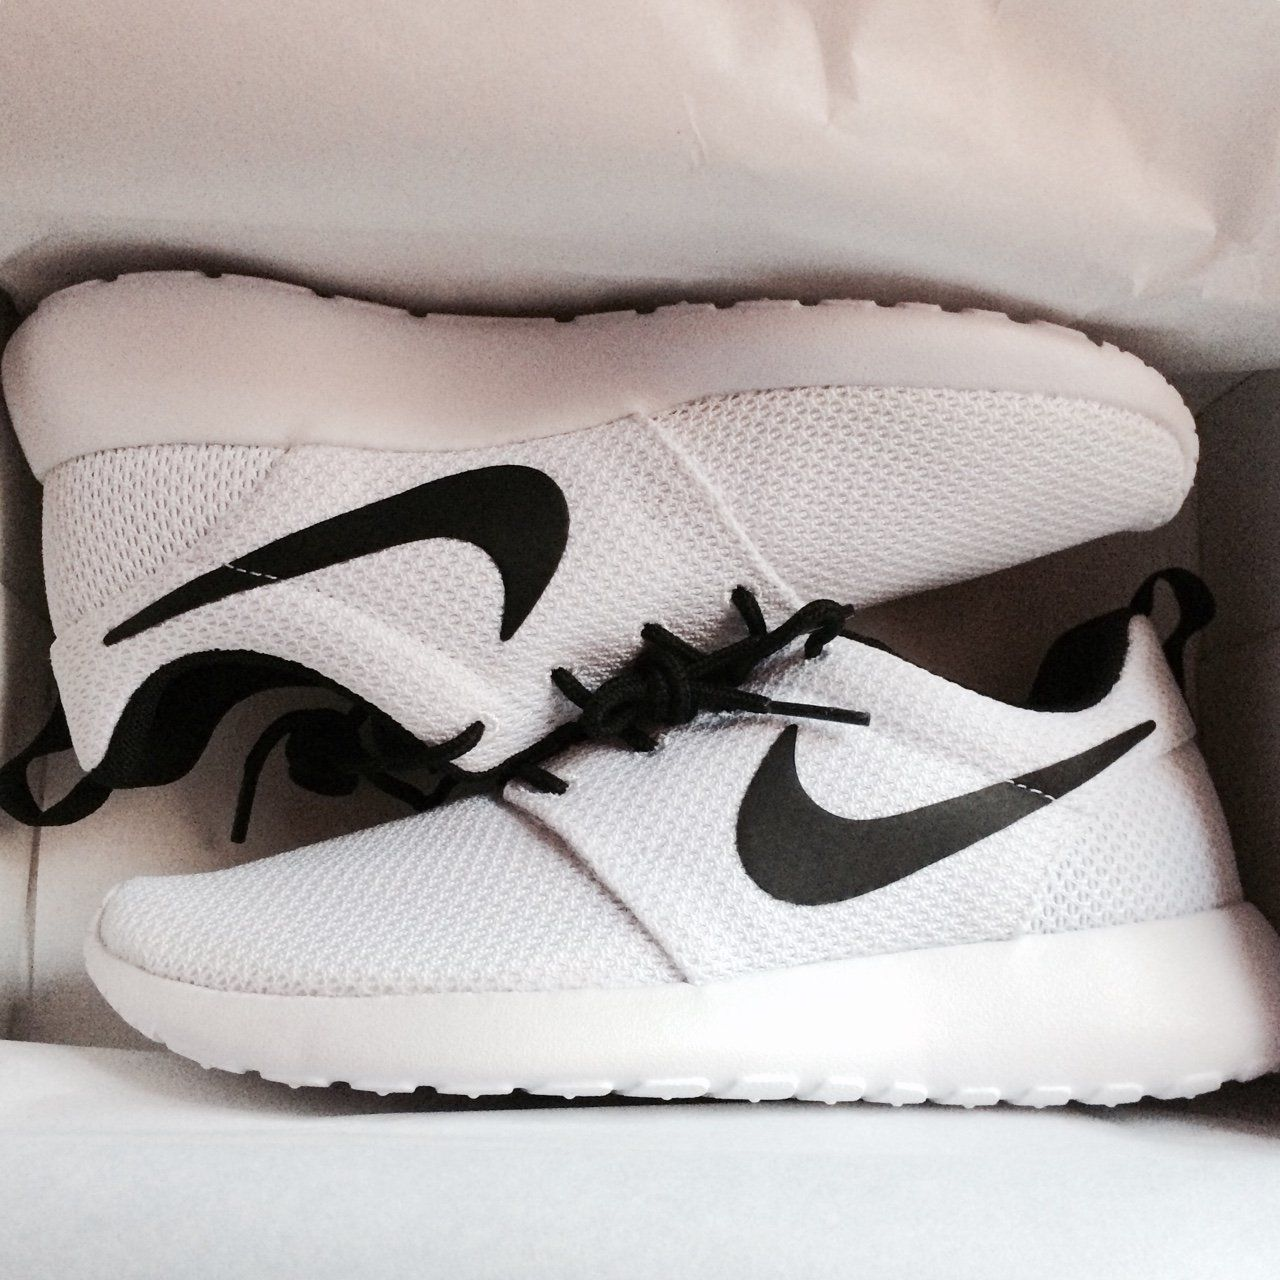 White Nikes With A Black Swoosh These Would Go Well With Any Outfit Nike Shoes Cheap Running Shoes Nike Nike Shoes Women